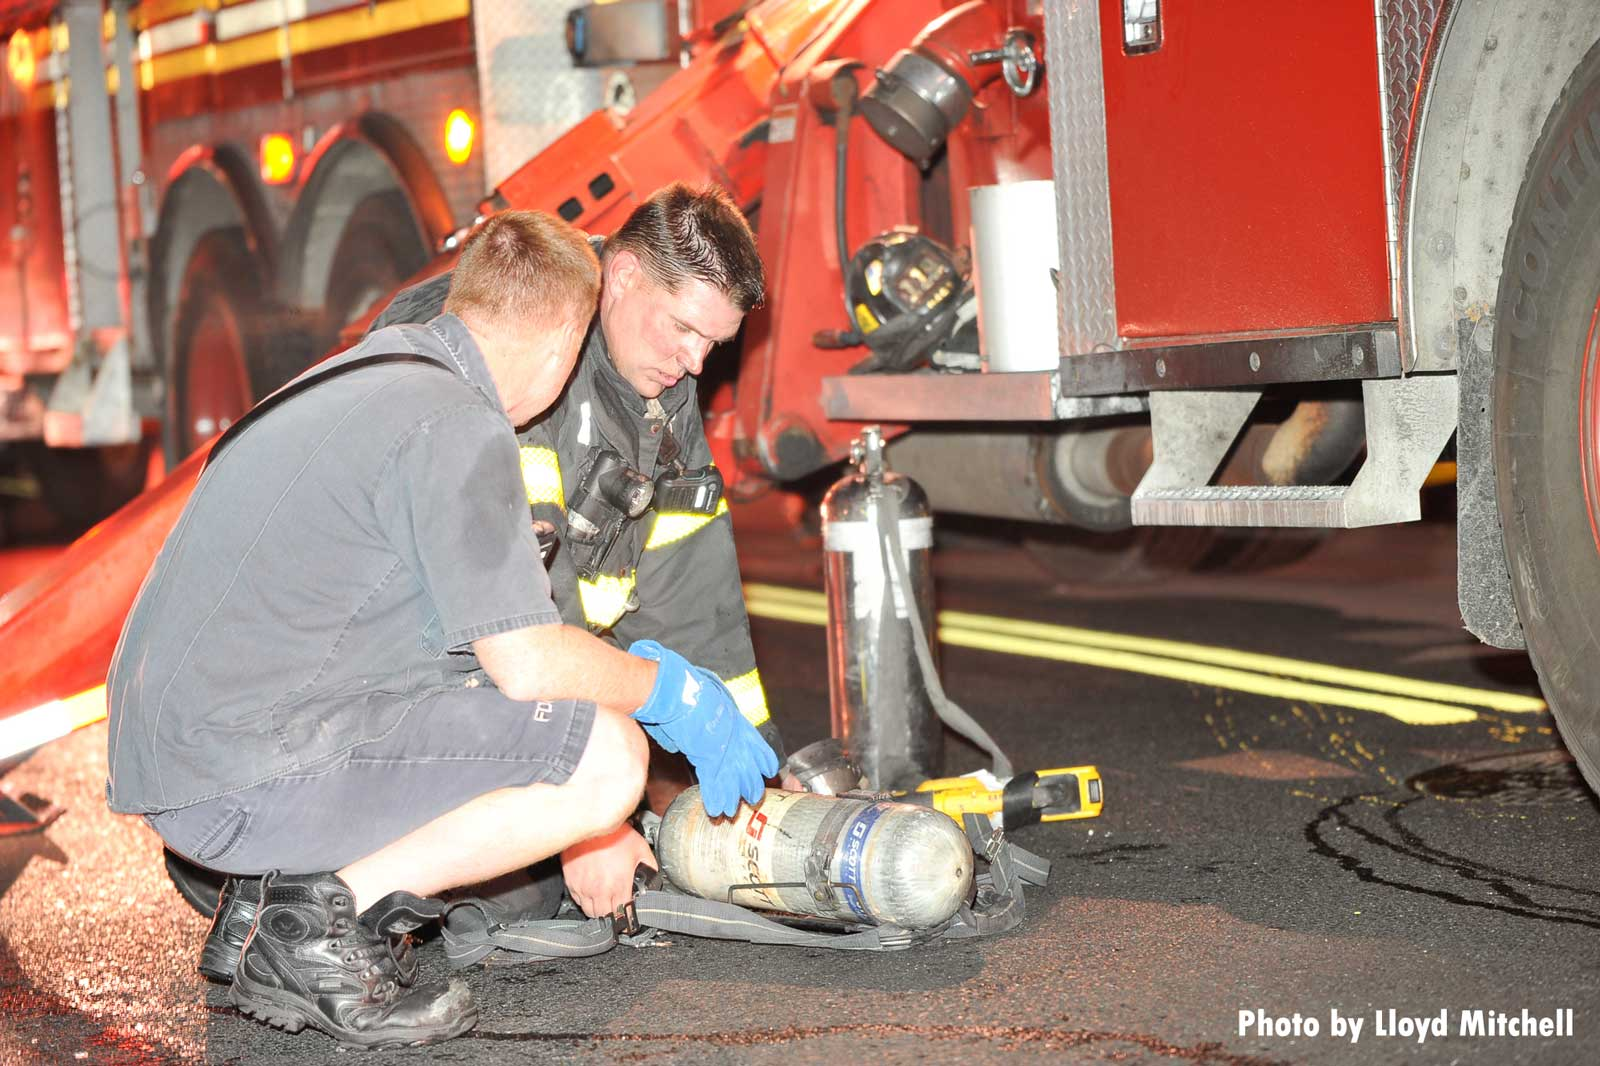 Firefighters work with an SCBA bottle at a fire scene